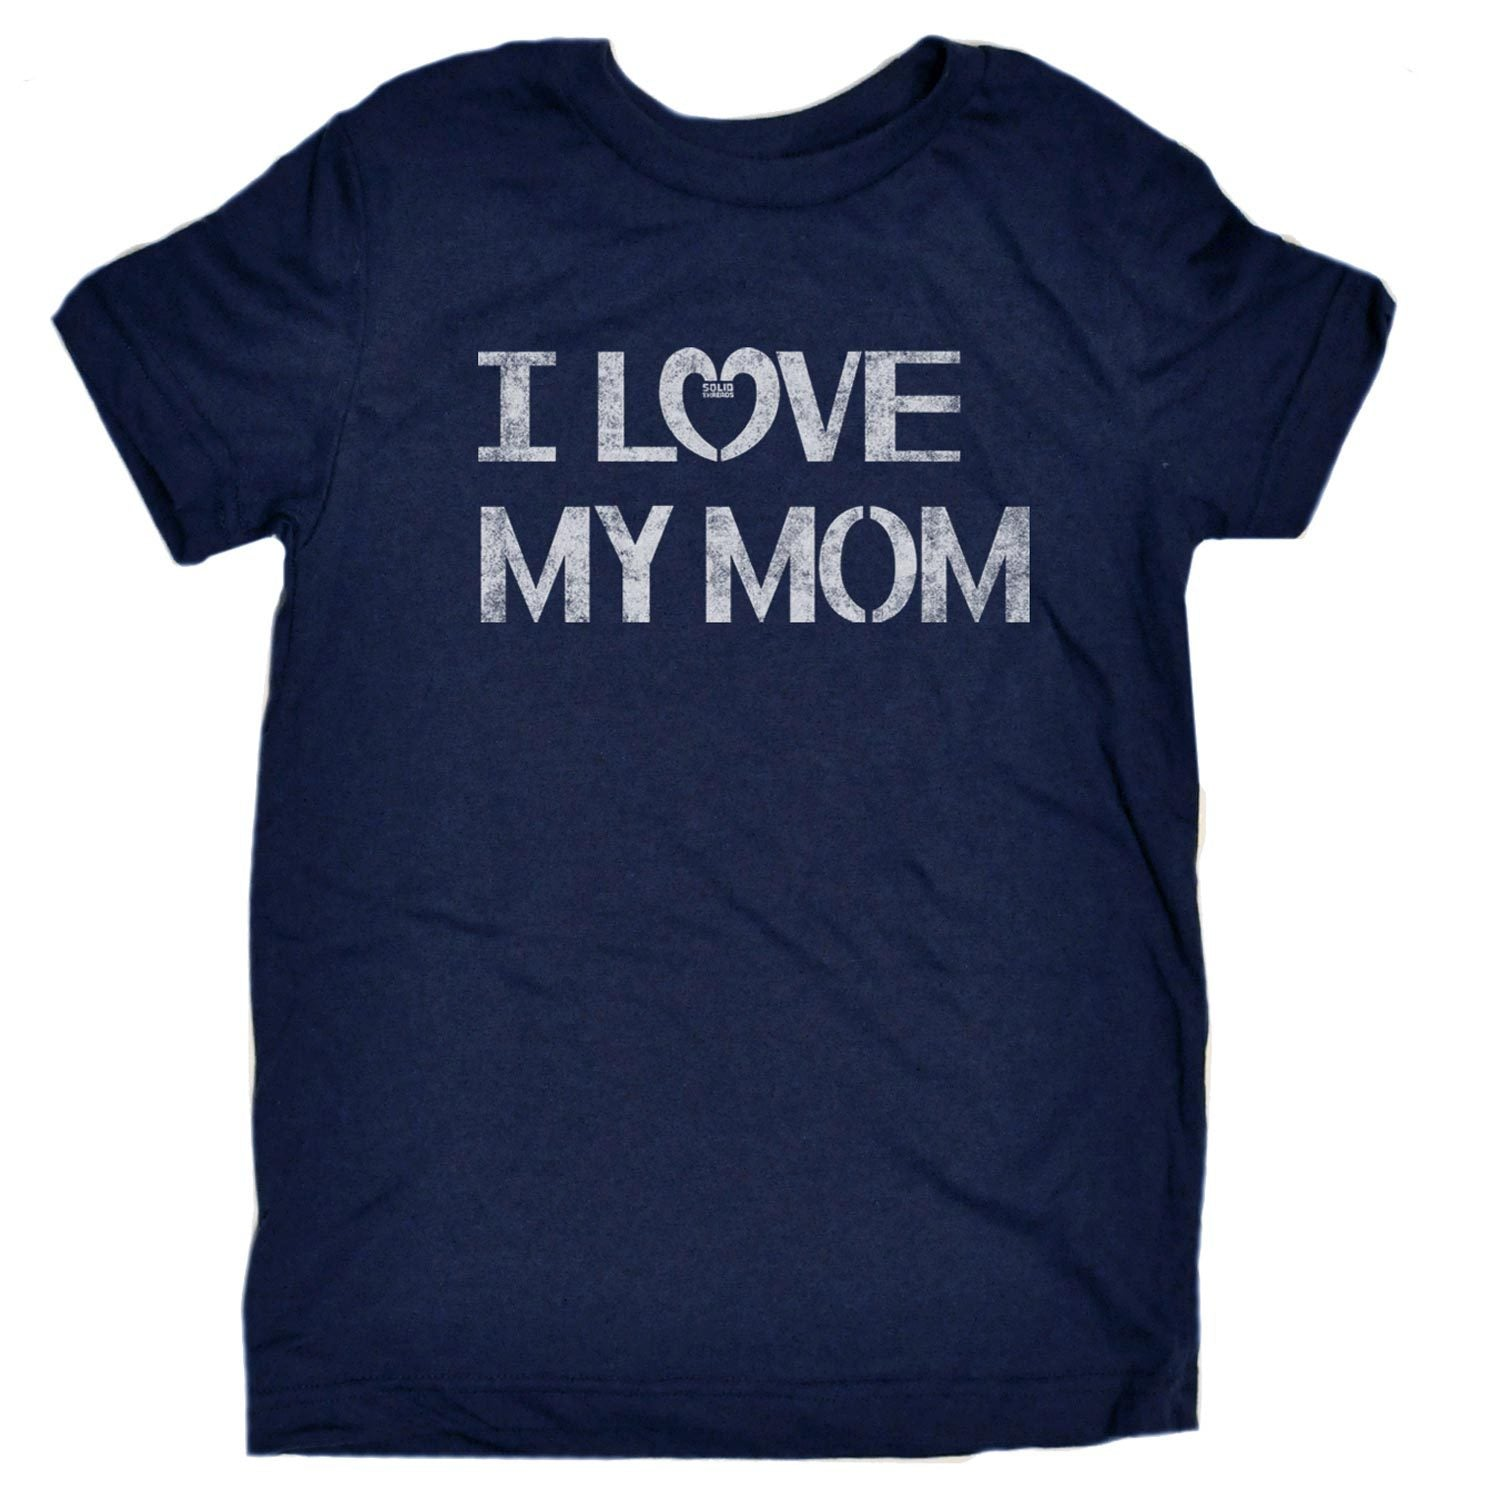 Toddler's I Love My Mom Vintage Inspired T-shirt | Retro Loving Family Graphic Tee | Solid Threads